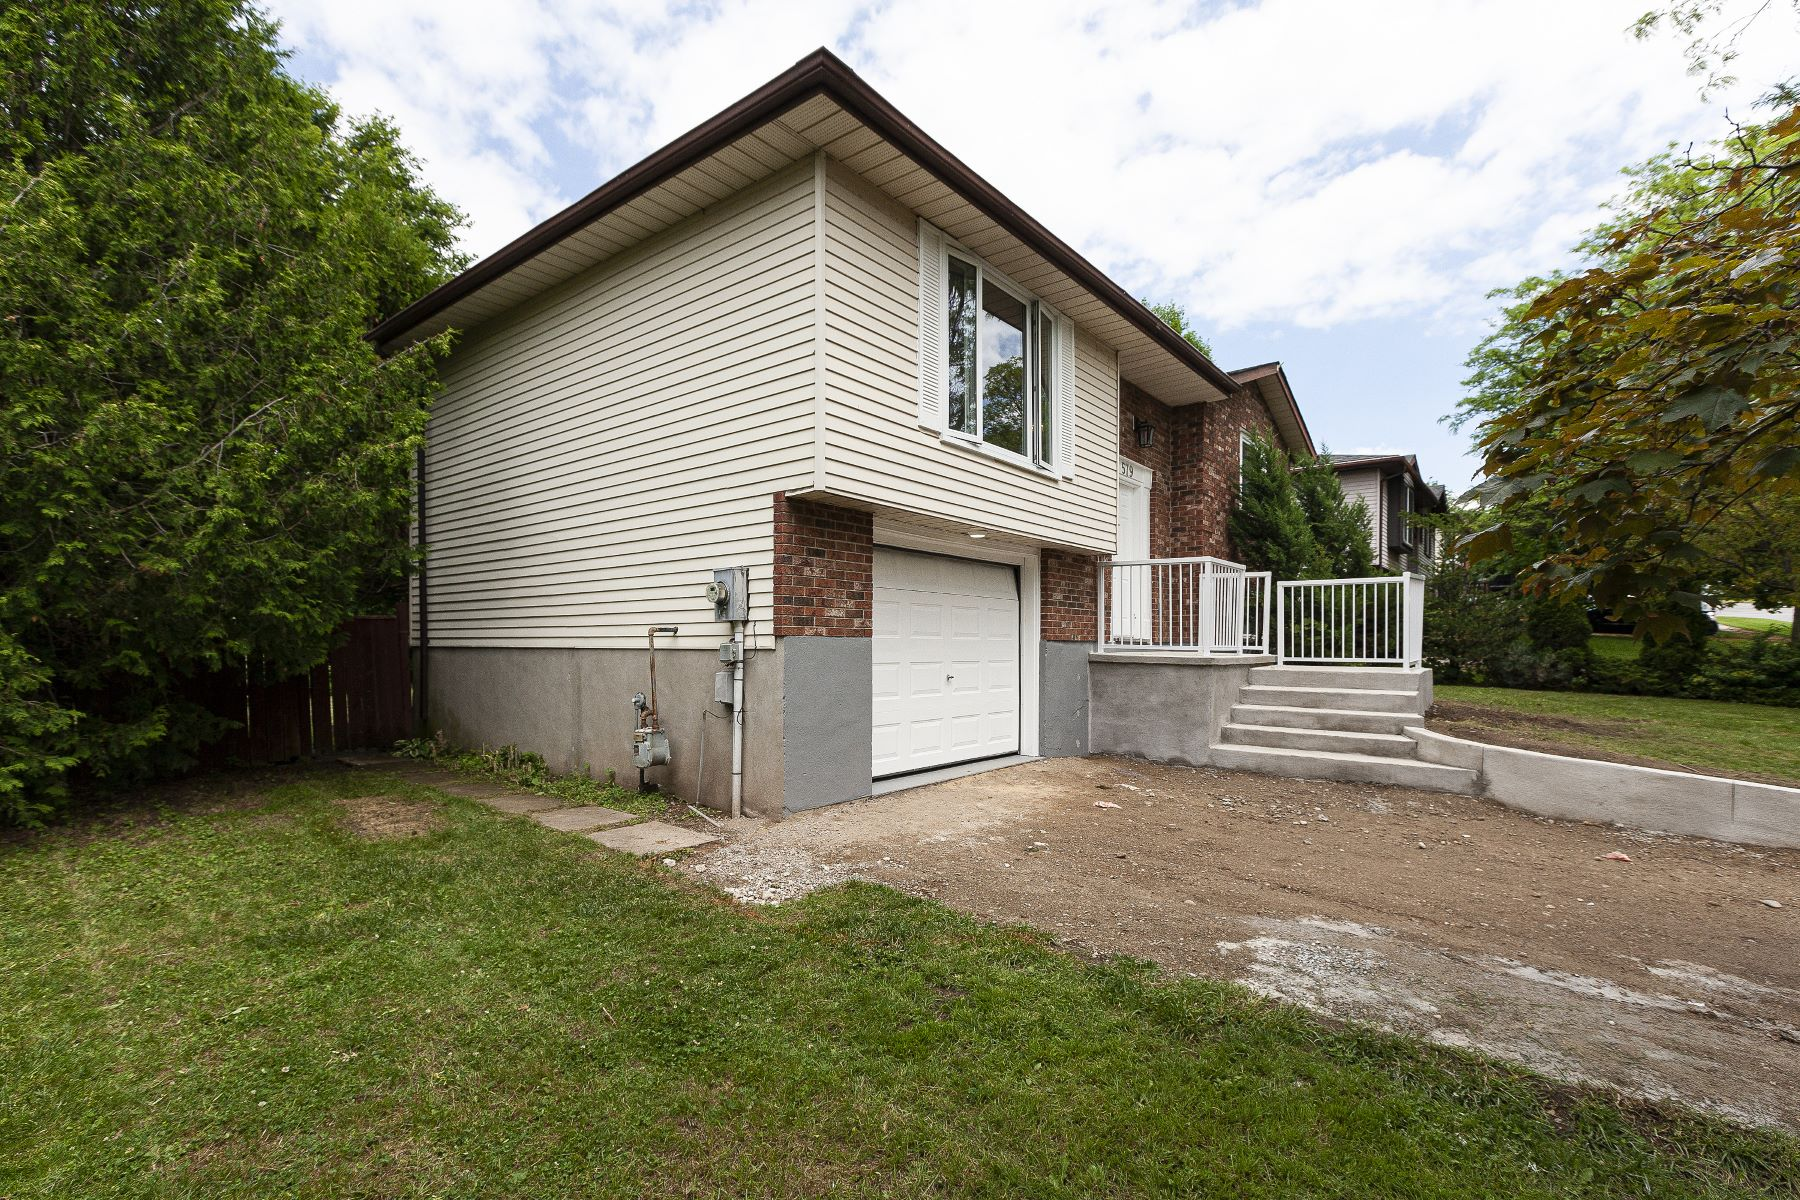 Single Family Homes for Sale at Fully Renovated Bungalow 579 Kortright Road Guelph, Ontario N1G 3K8 Canada